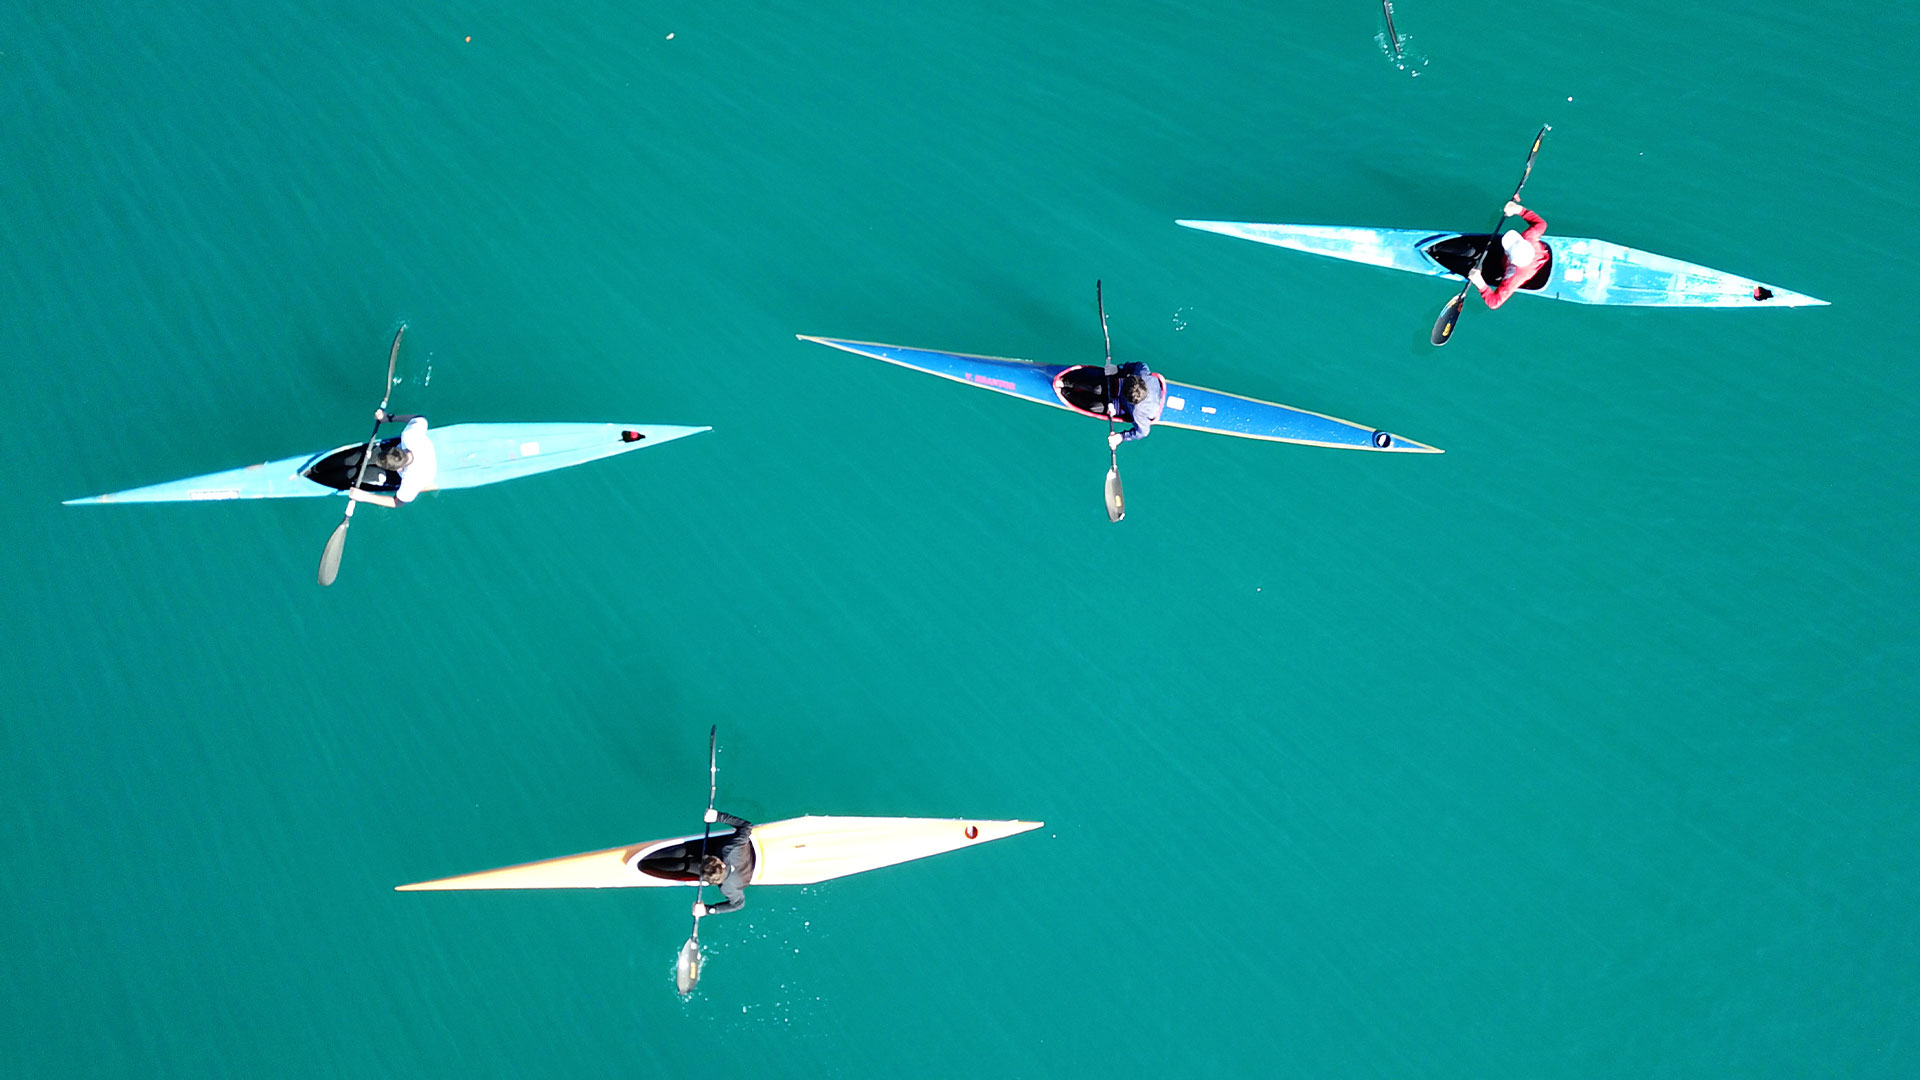 Image of four kayaks on blue water